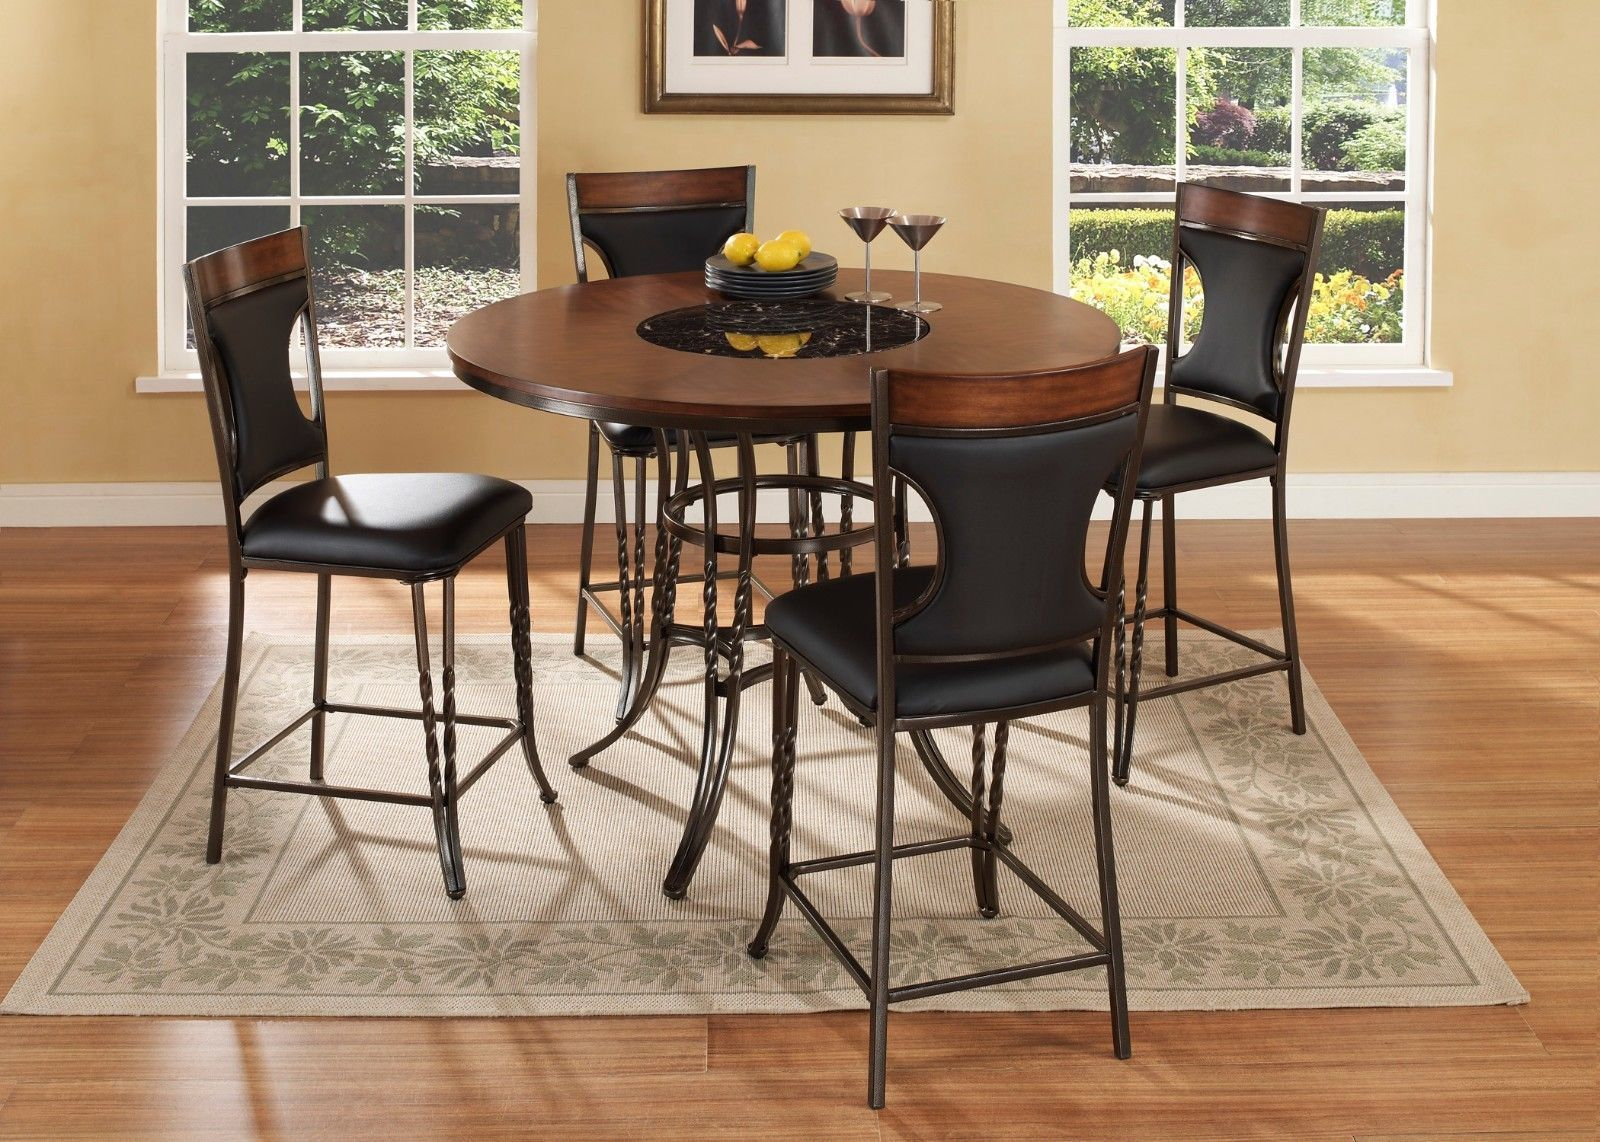 Mcferran DYNASTY Counter High Dining Room Set 5pc. Chic Modern Style